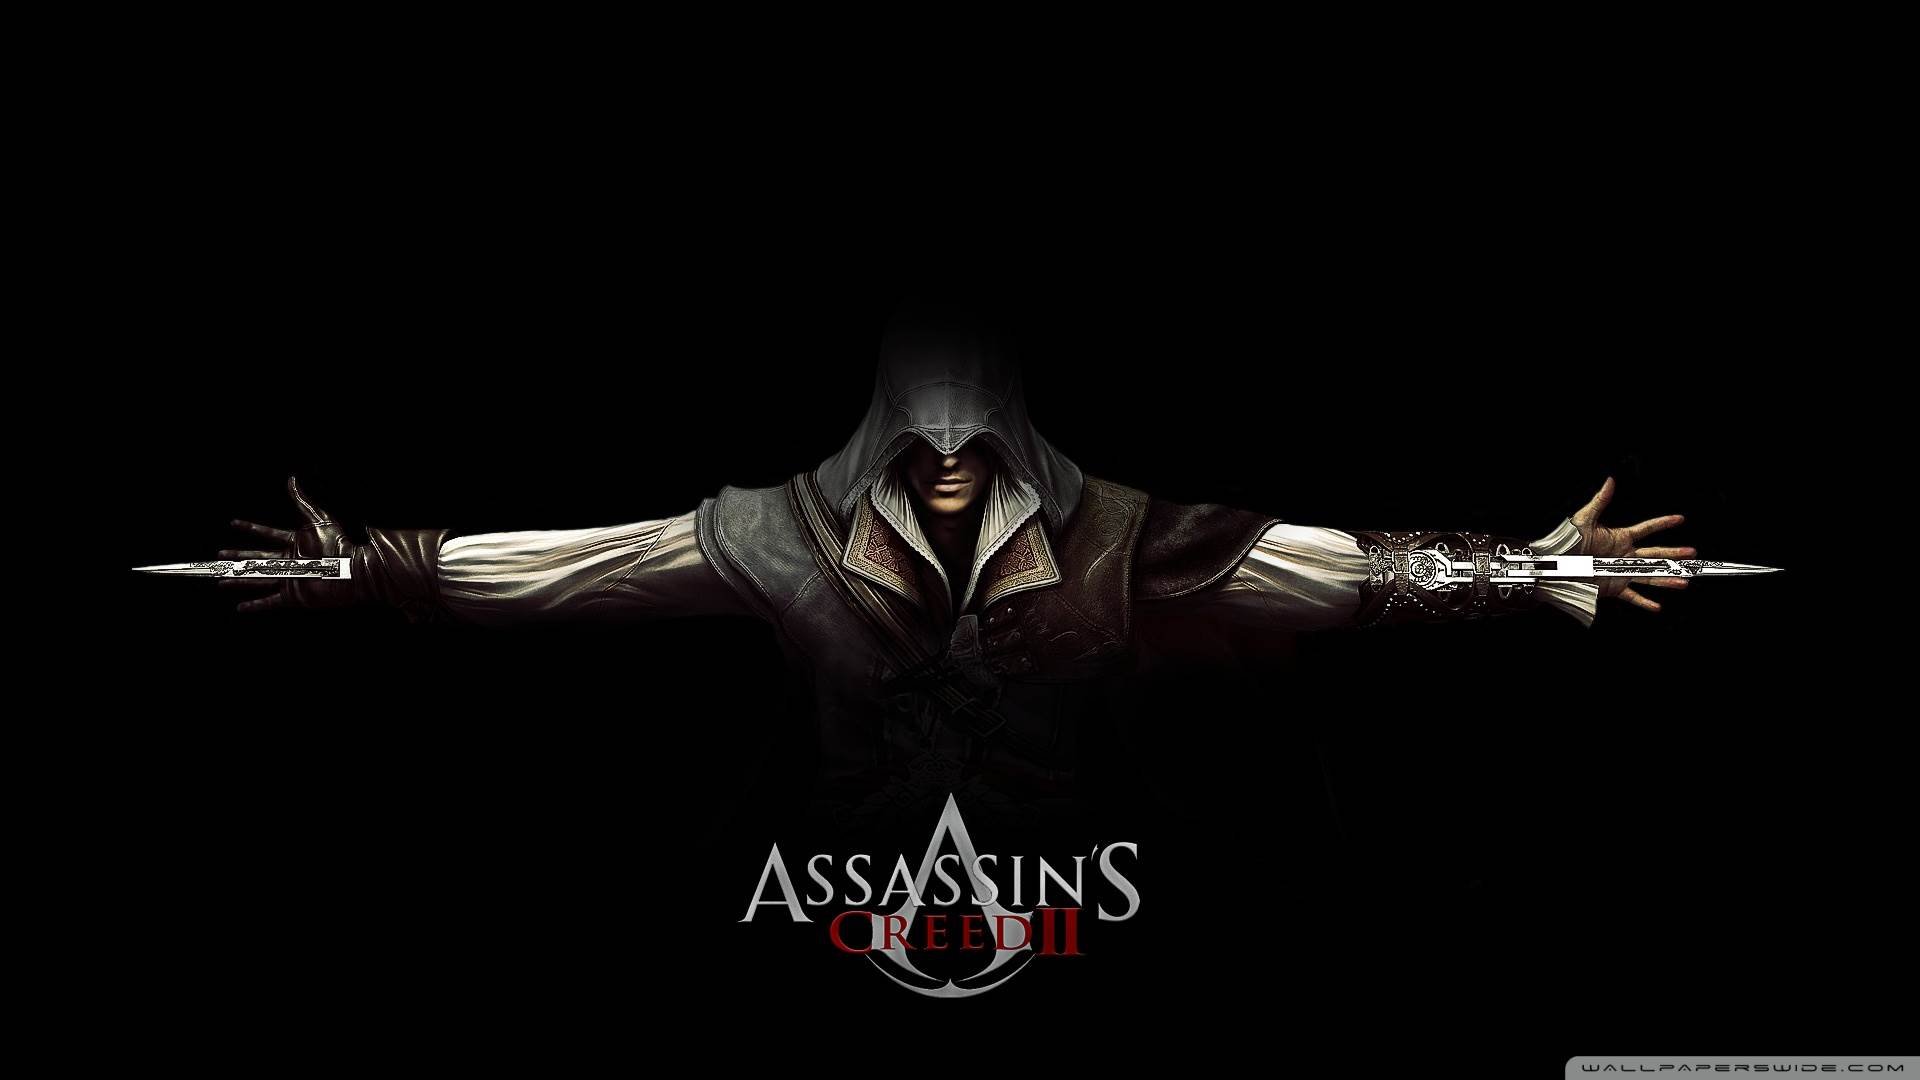 Download Assassins Creed Wallpapers 1920x1080